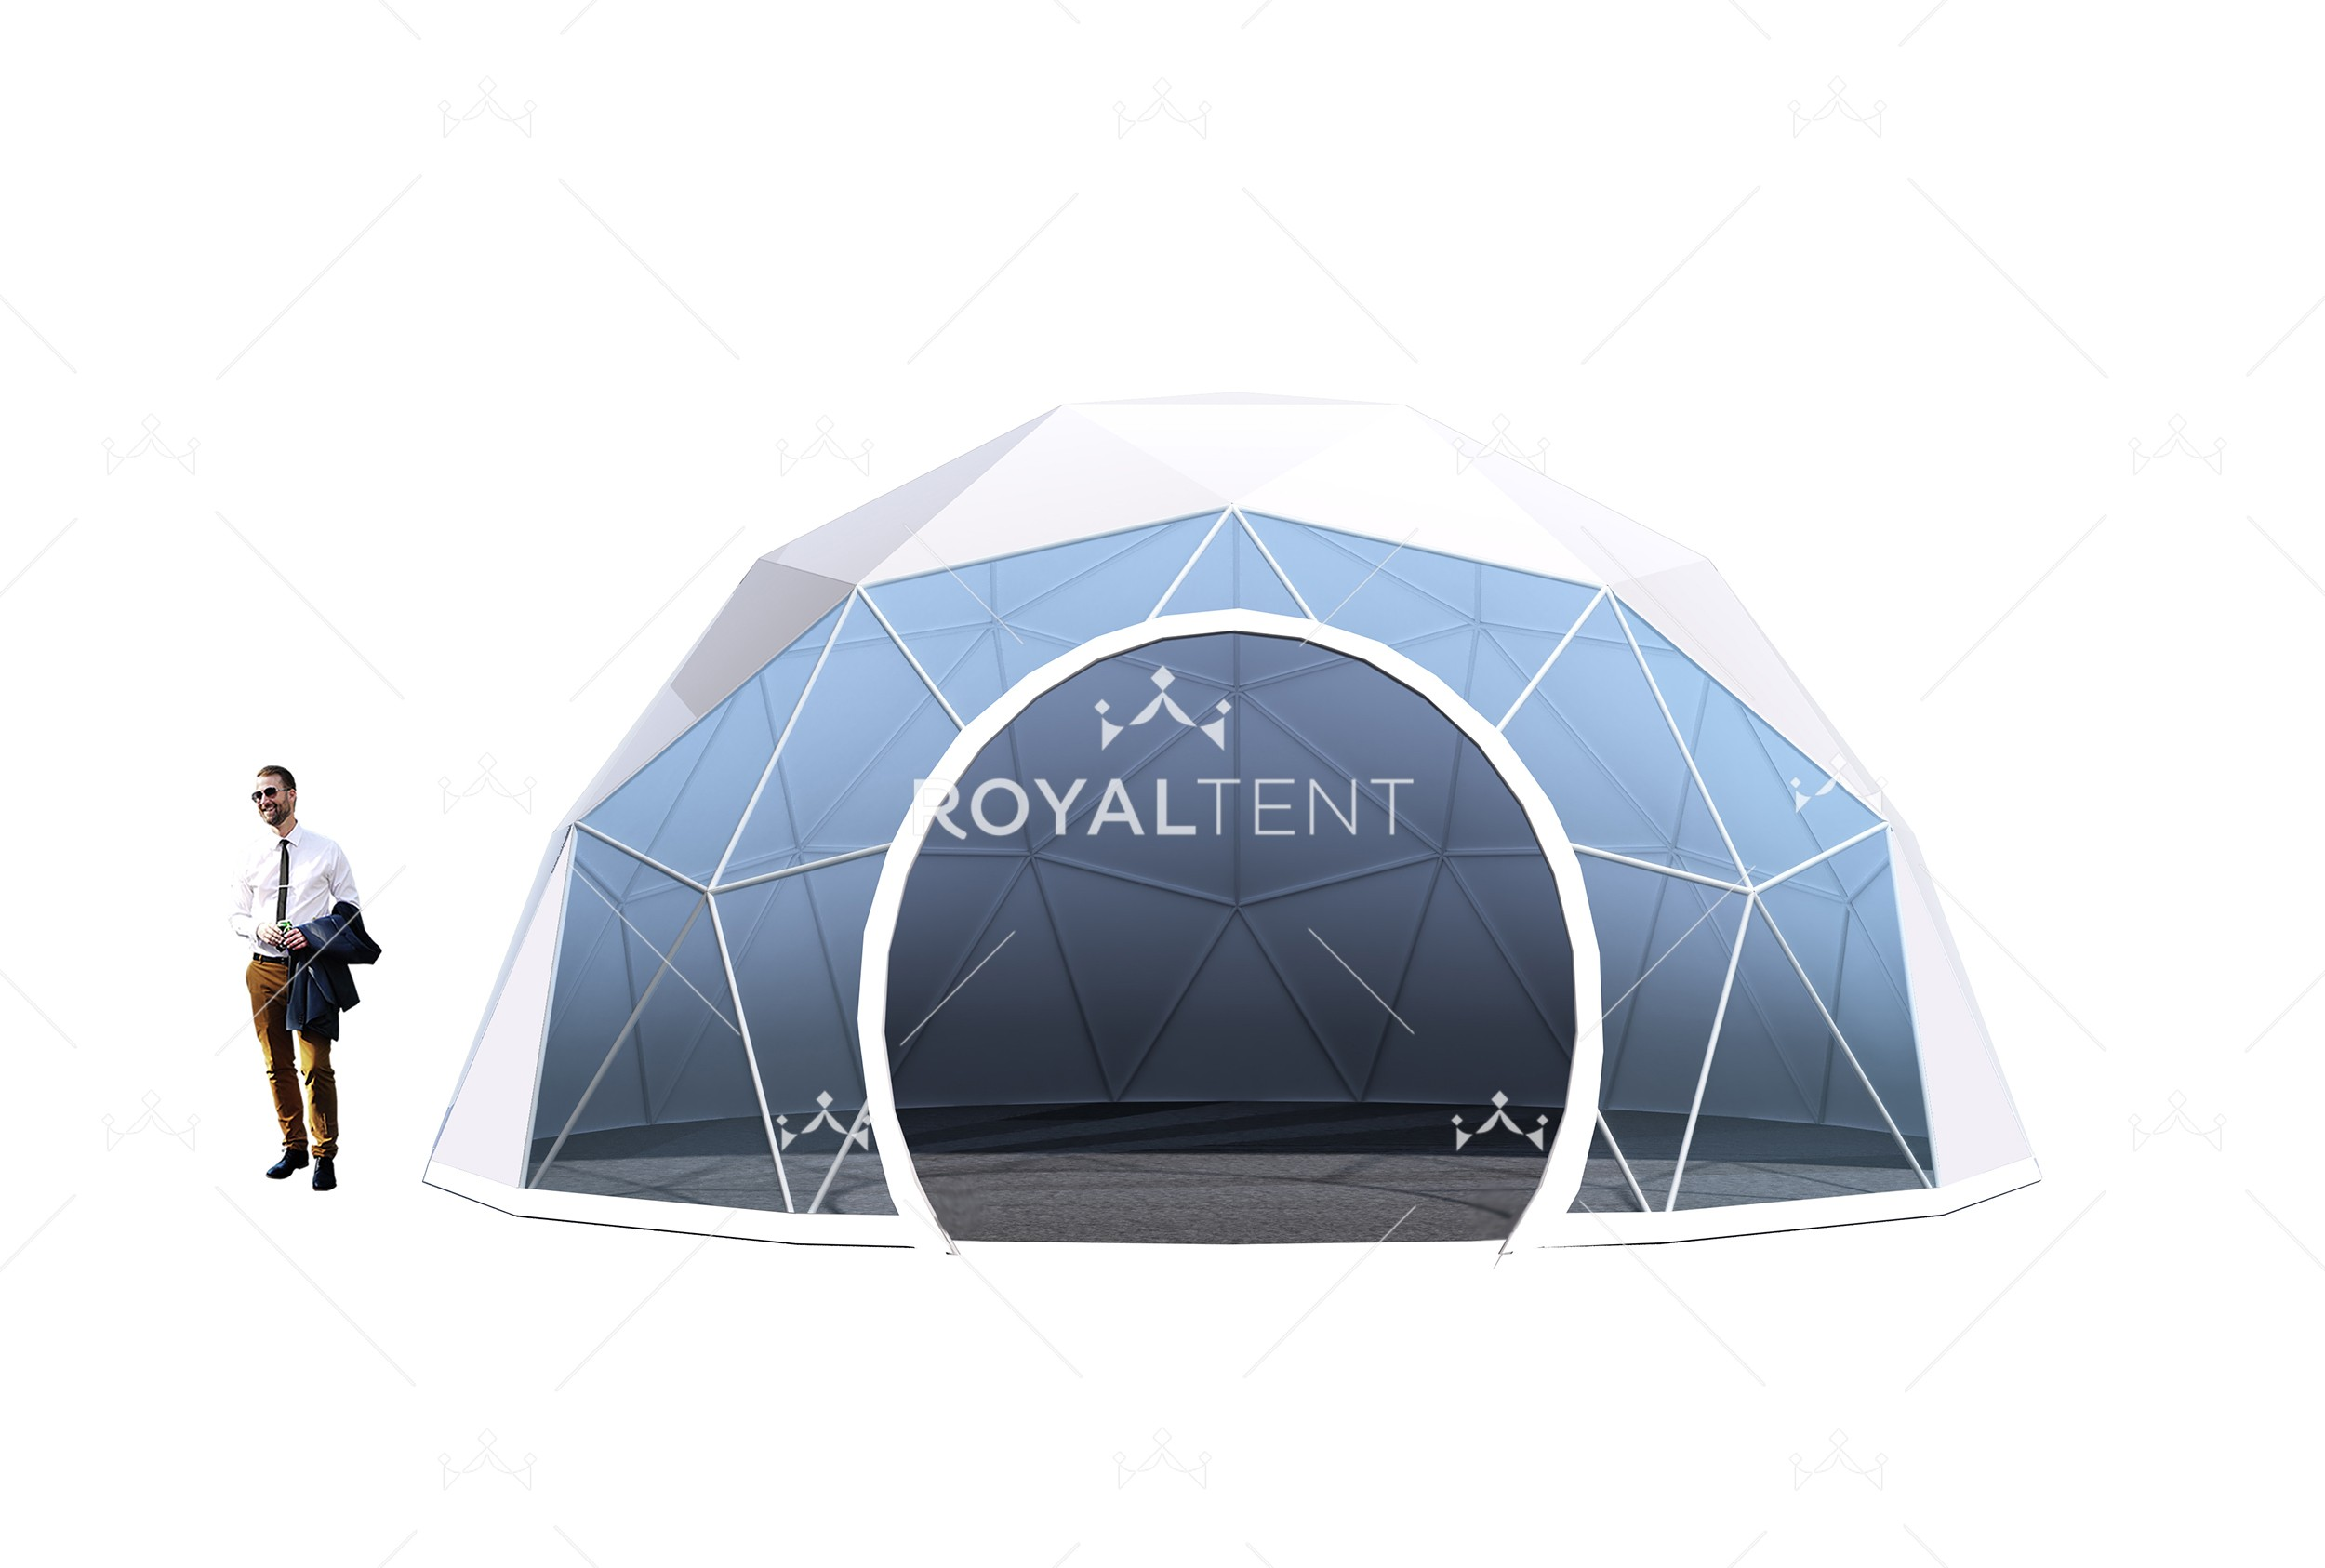 https://royaltent.me/houses_images/tent2_2_200111095214.jpg